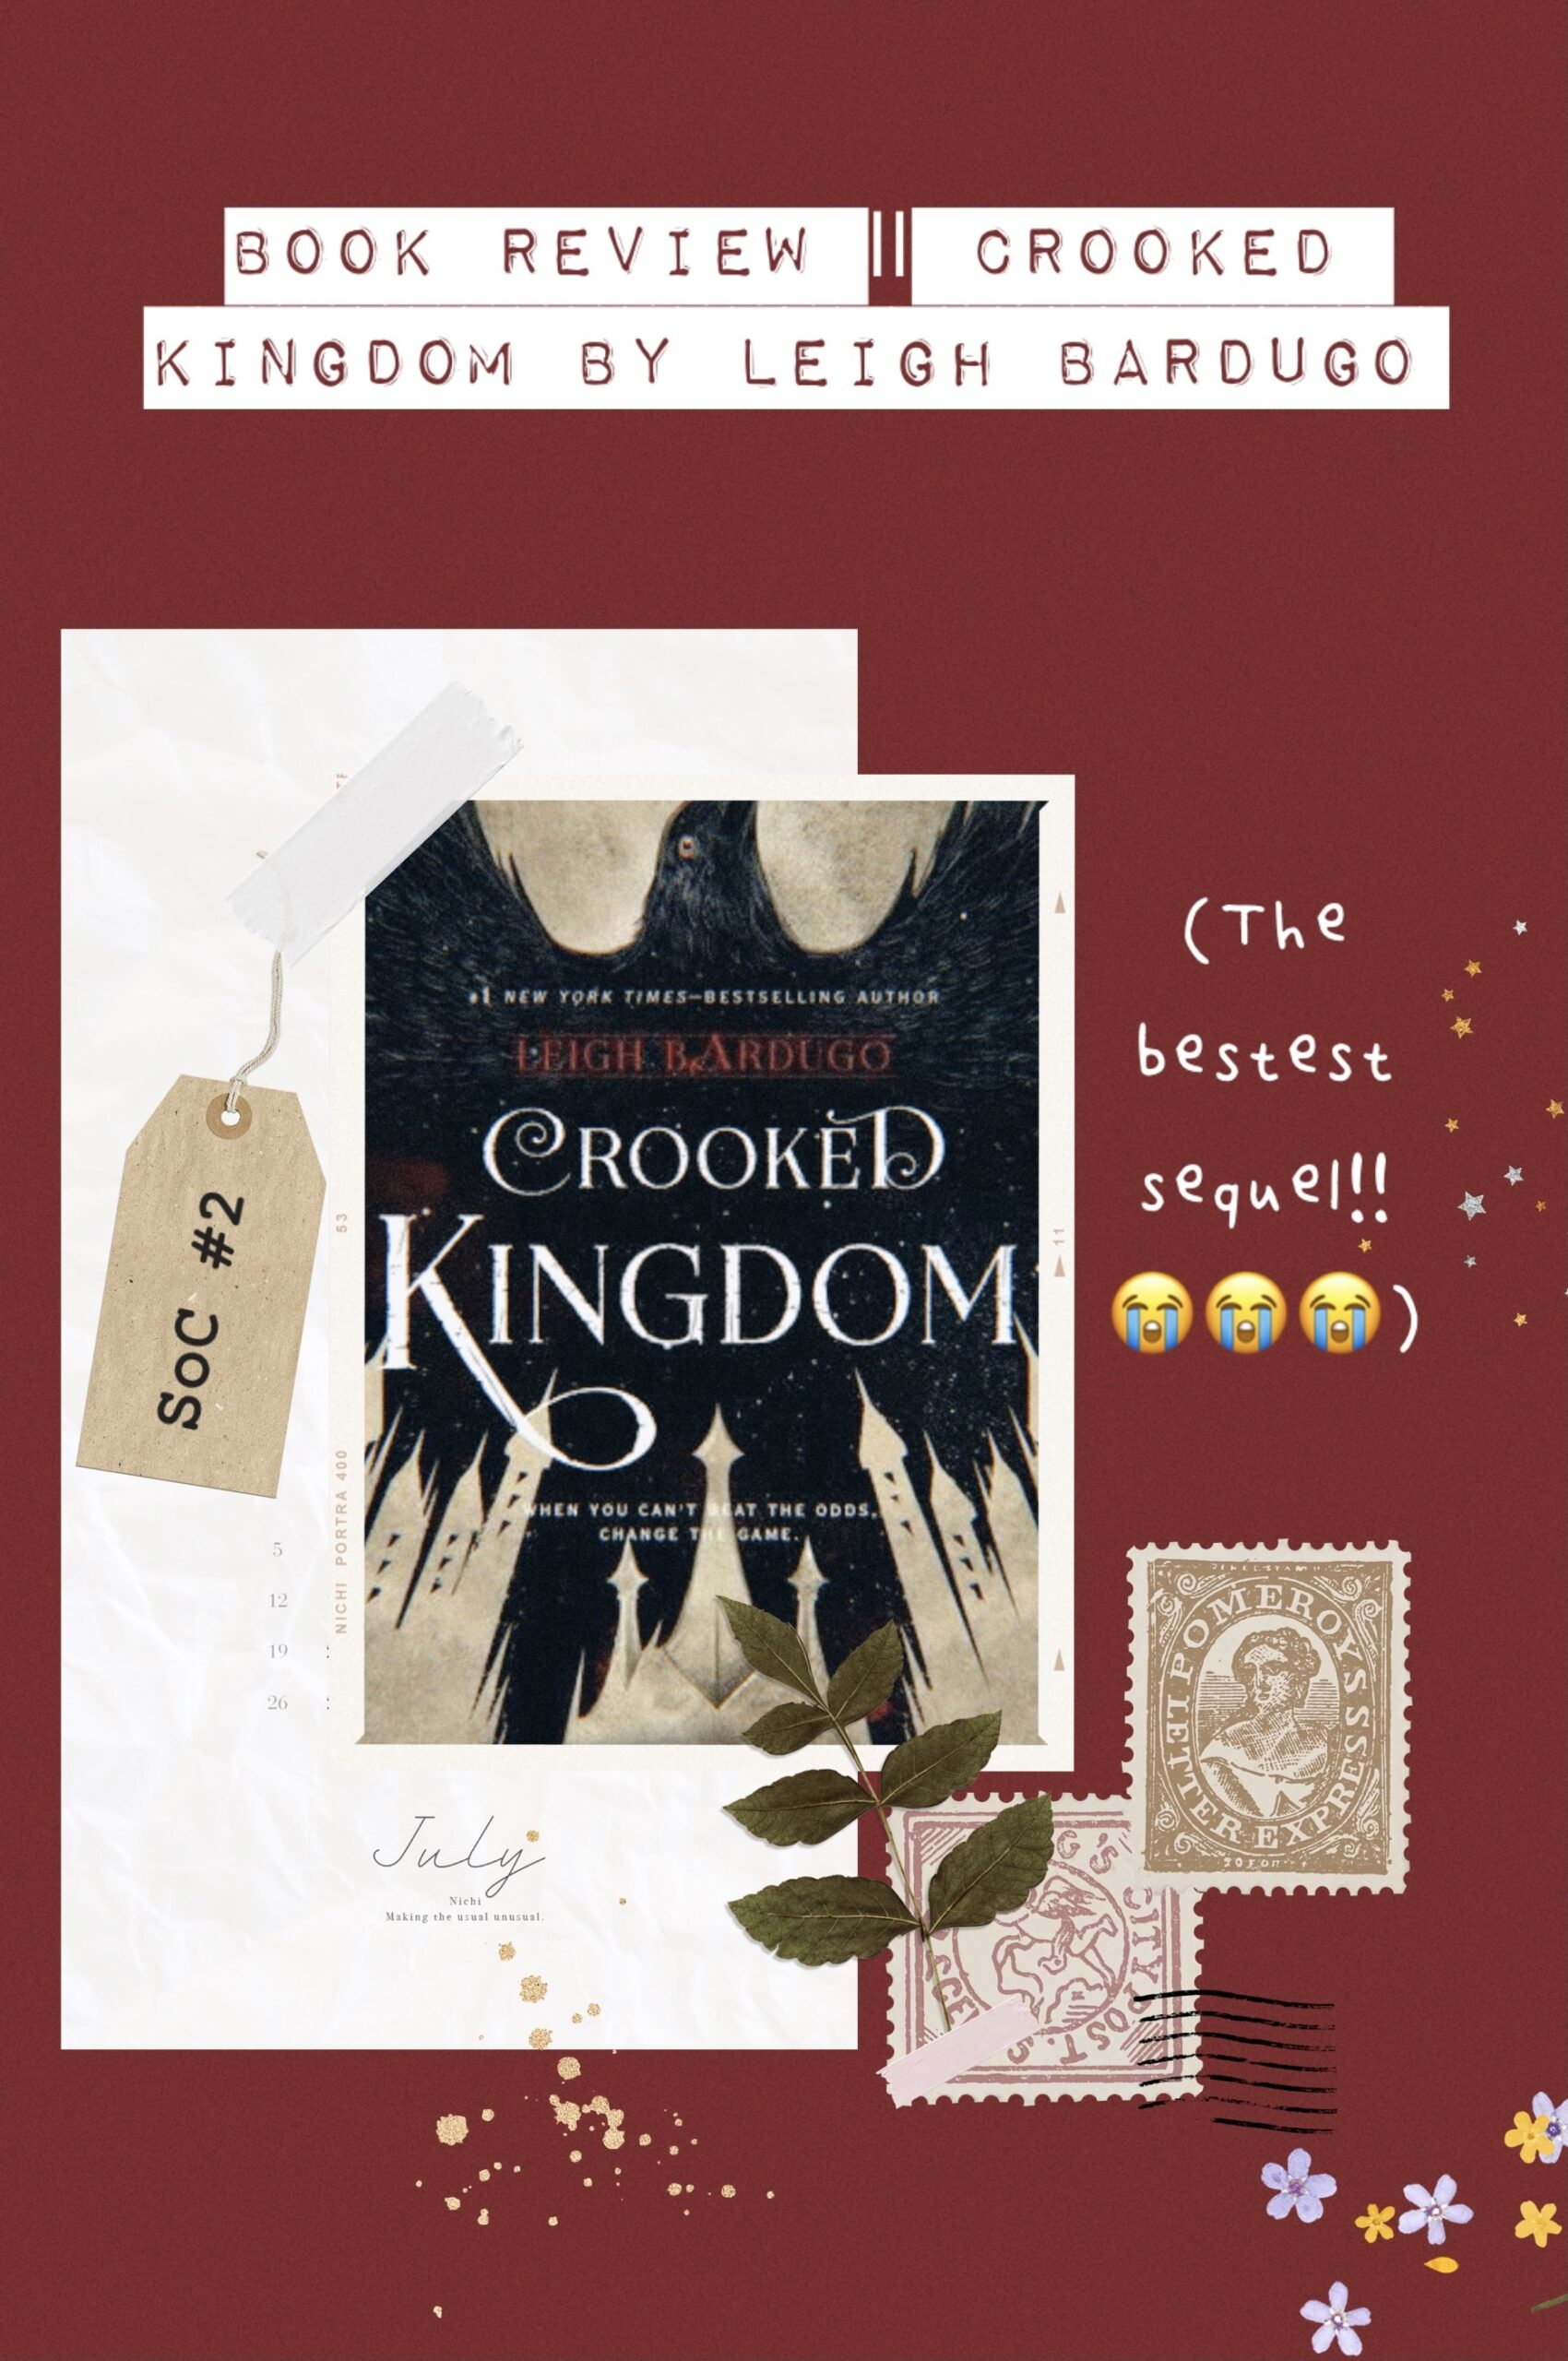 Book Review Crooked Kingdom by Leigh Bardugo